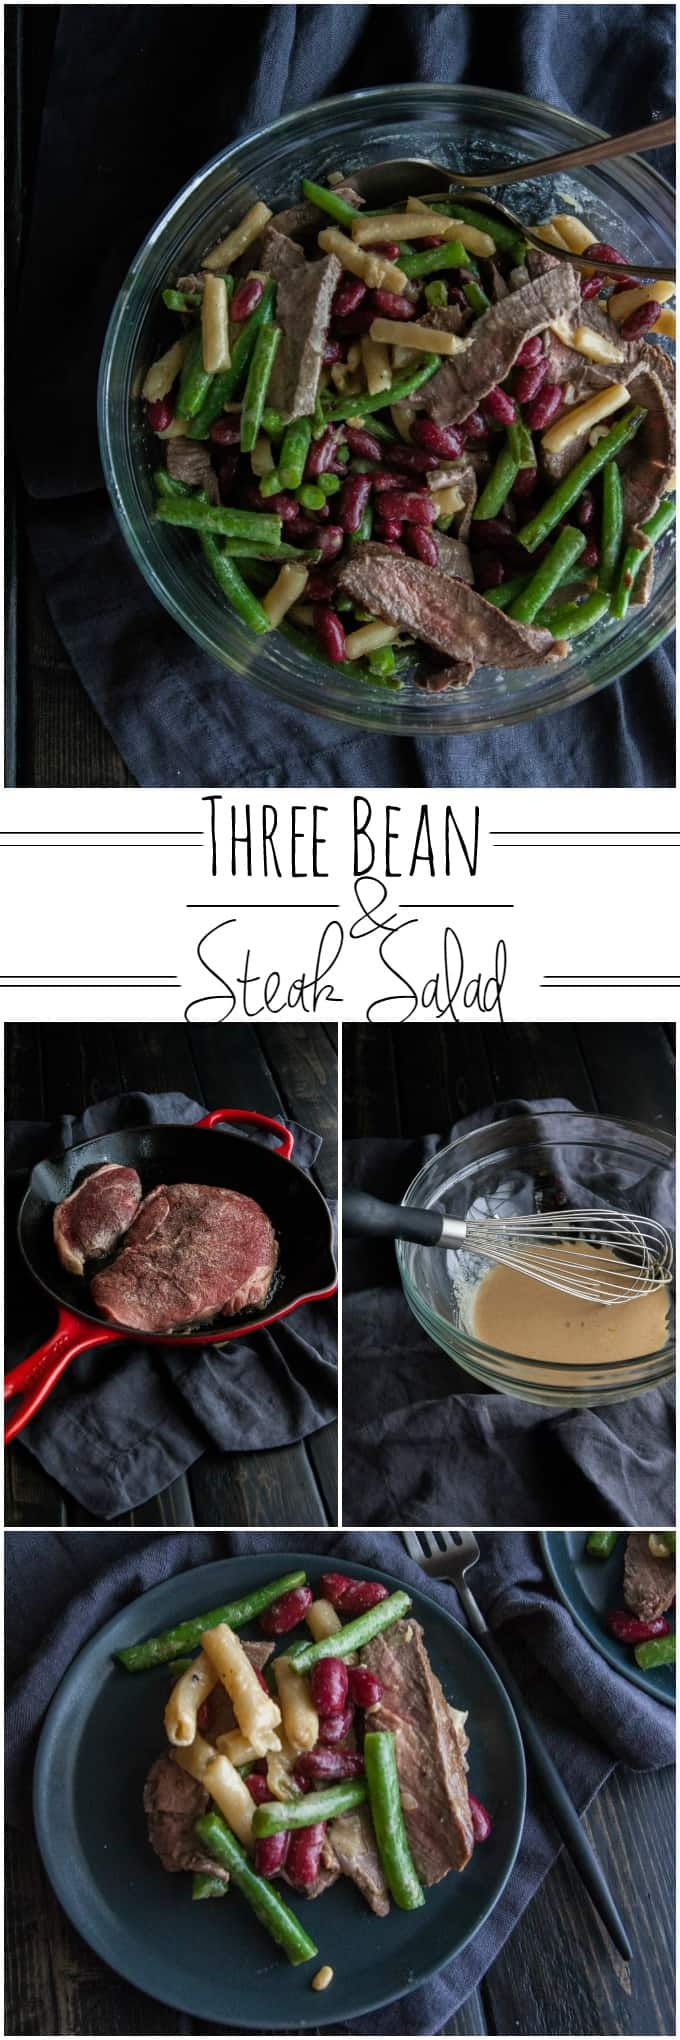 Three bean and steak salad from @sweetphi